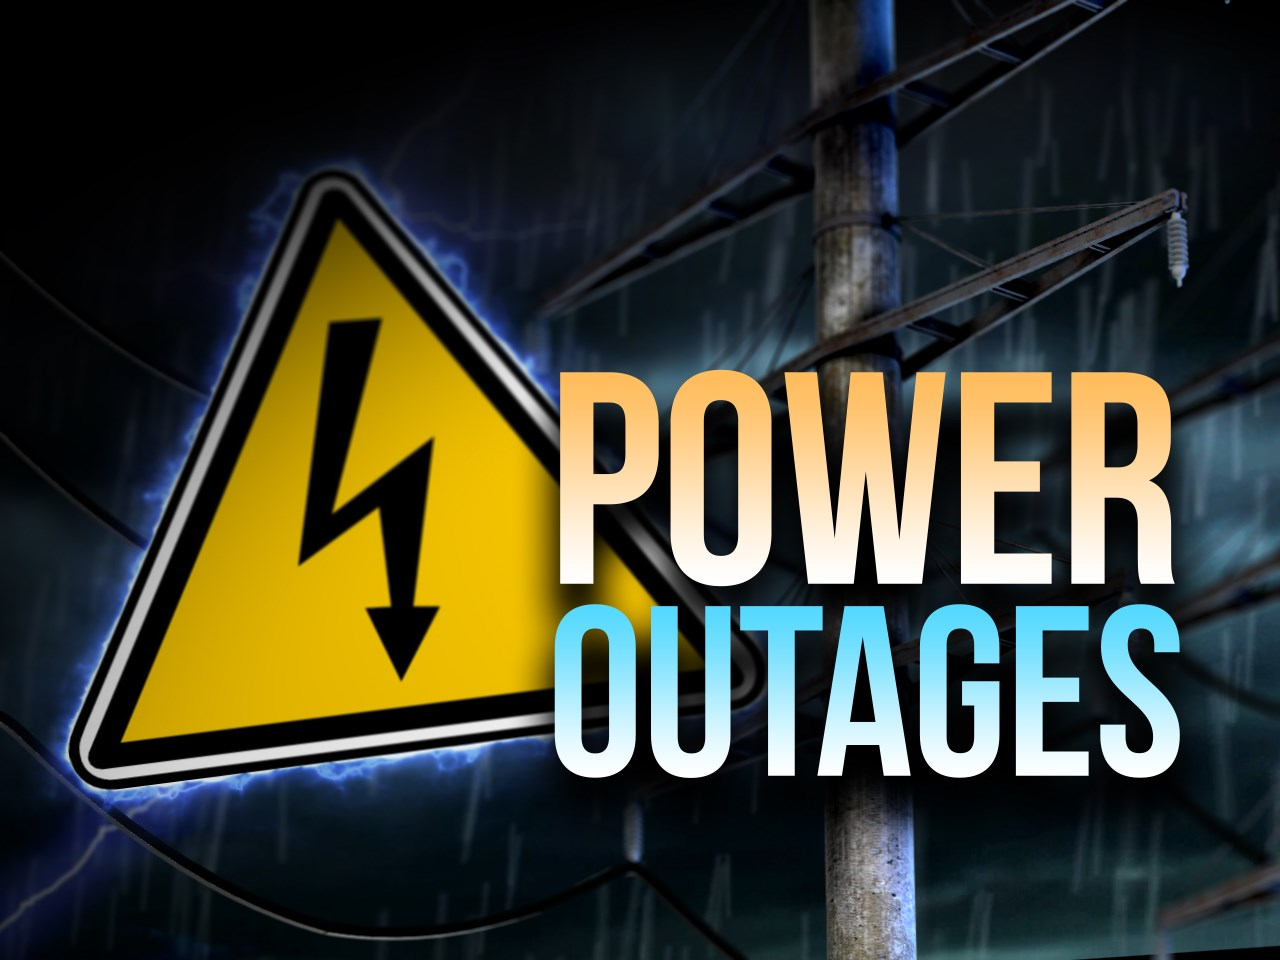 POWER OUTAGES WITH TEXT 2_1523714246121.jpg.jpg